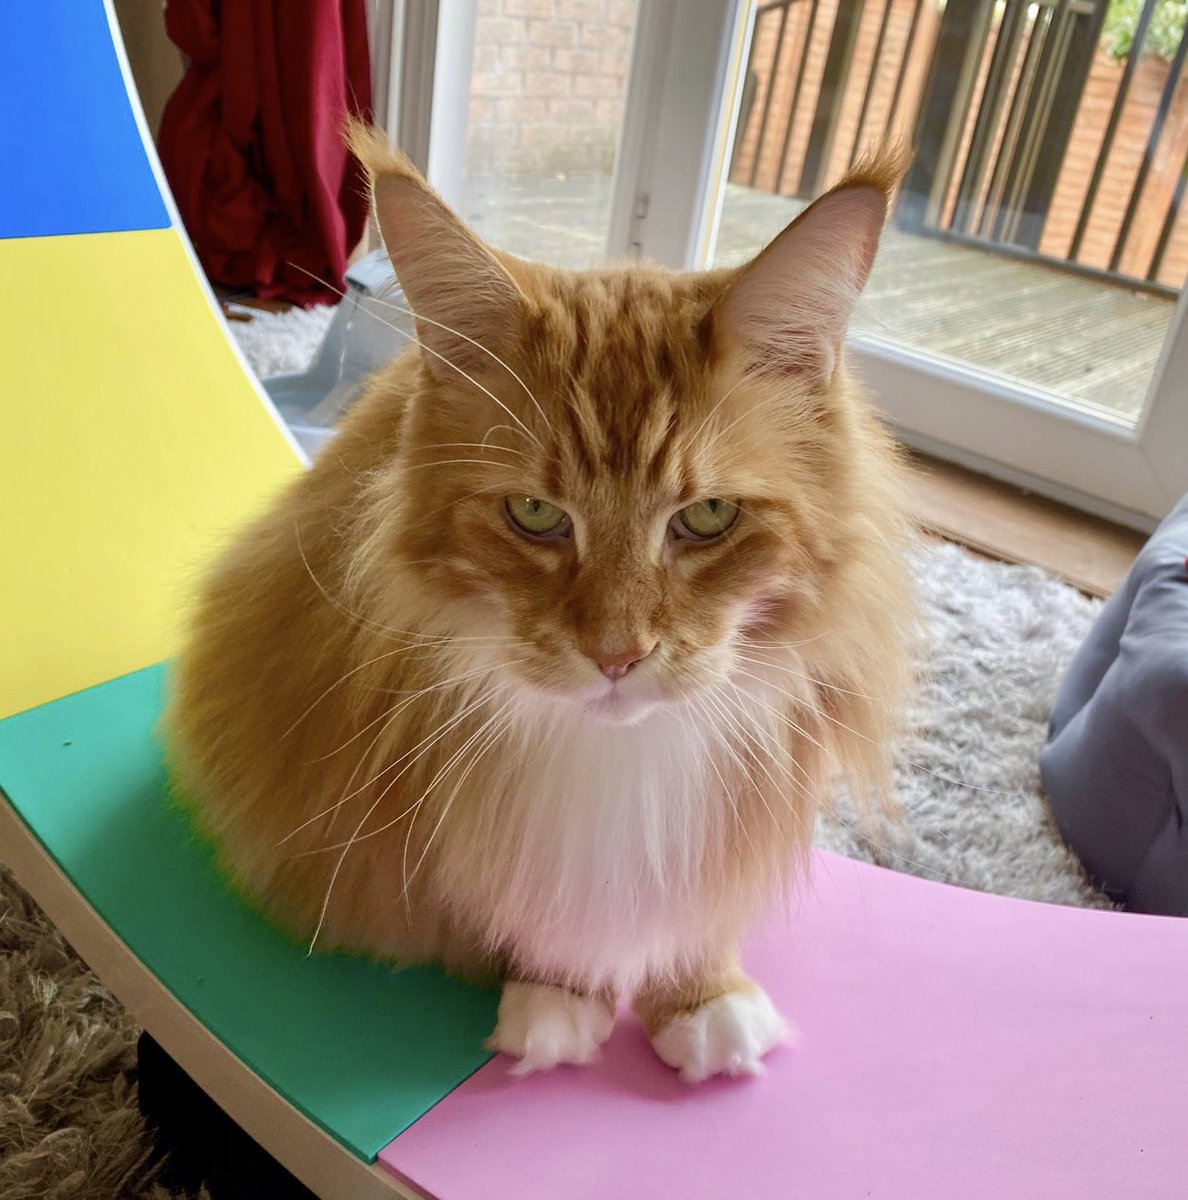 Slow progress with the wheel but we're getting there! Sitting on it is a start 😹😹🦁🦁 #WhiskersWednesday #teamfloof #CatsOfTwitter